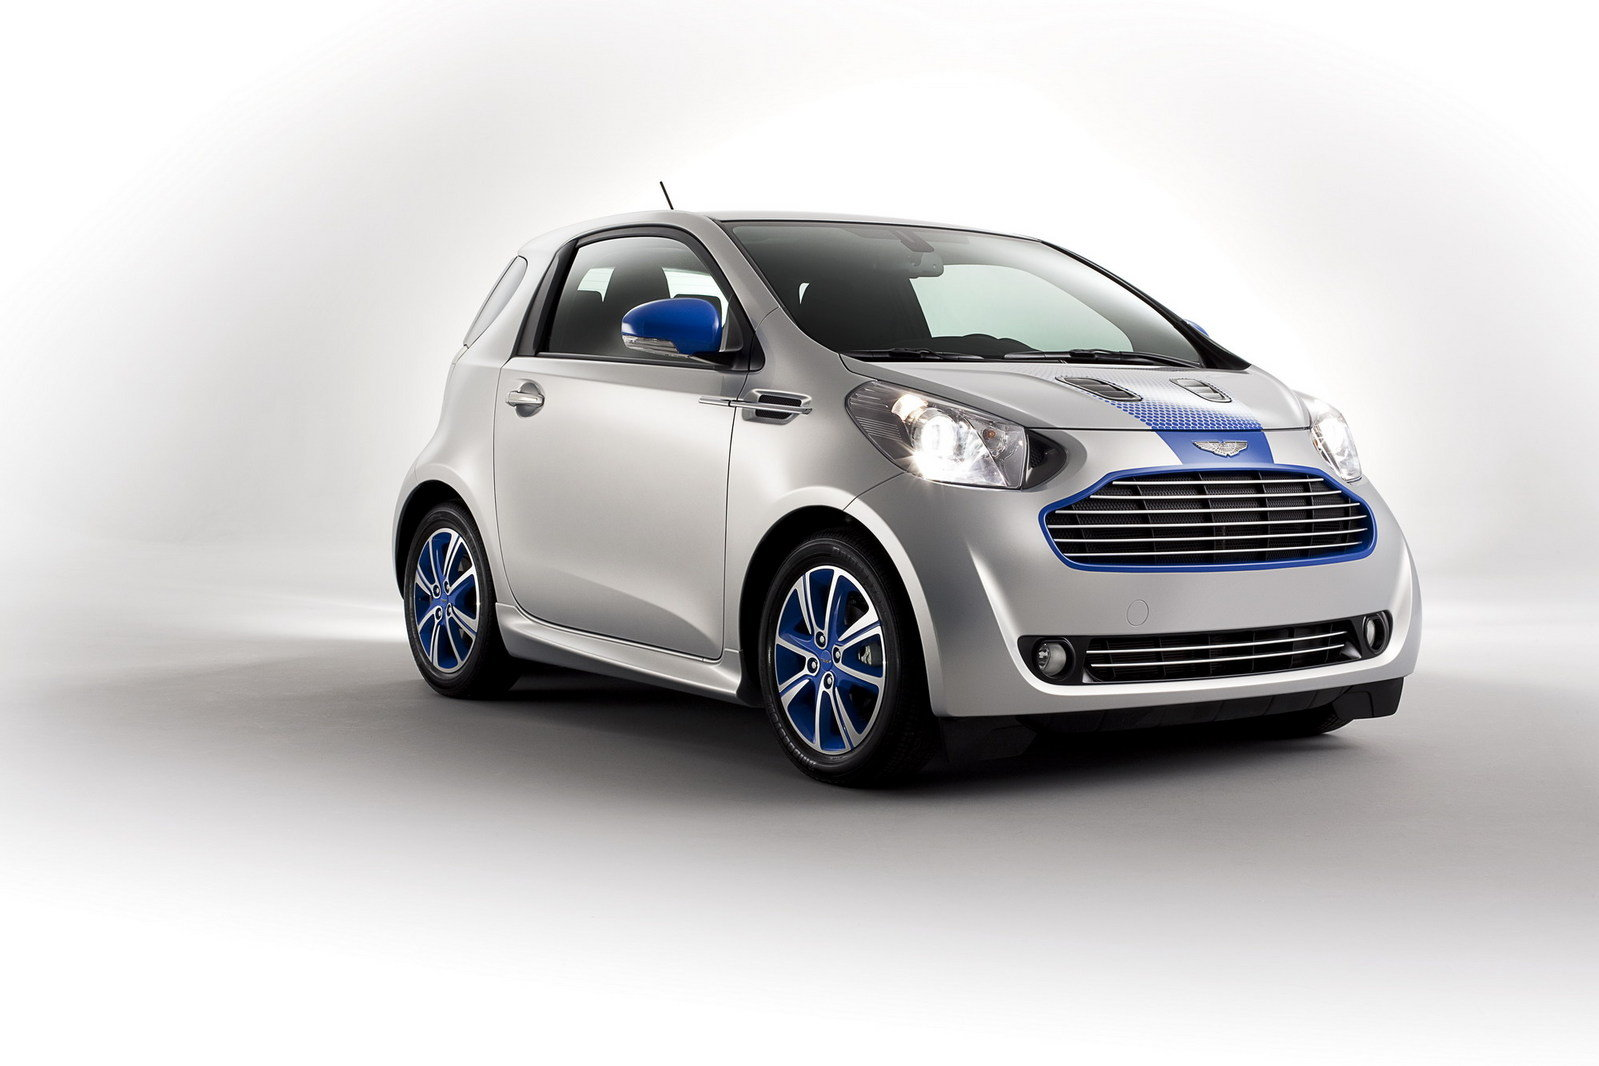 2011 Aston Martin Cygnet  Colette Limited Edition  Top Speed